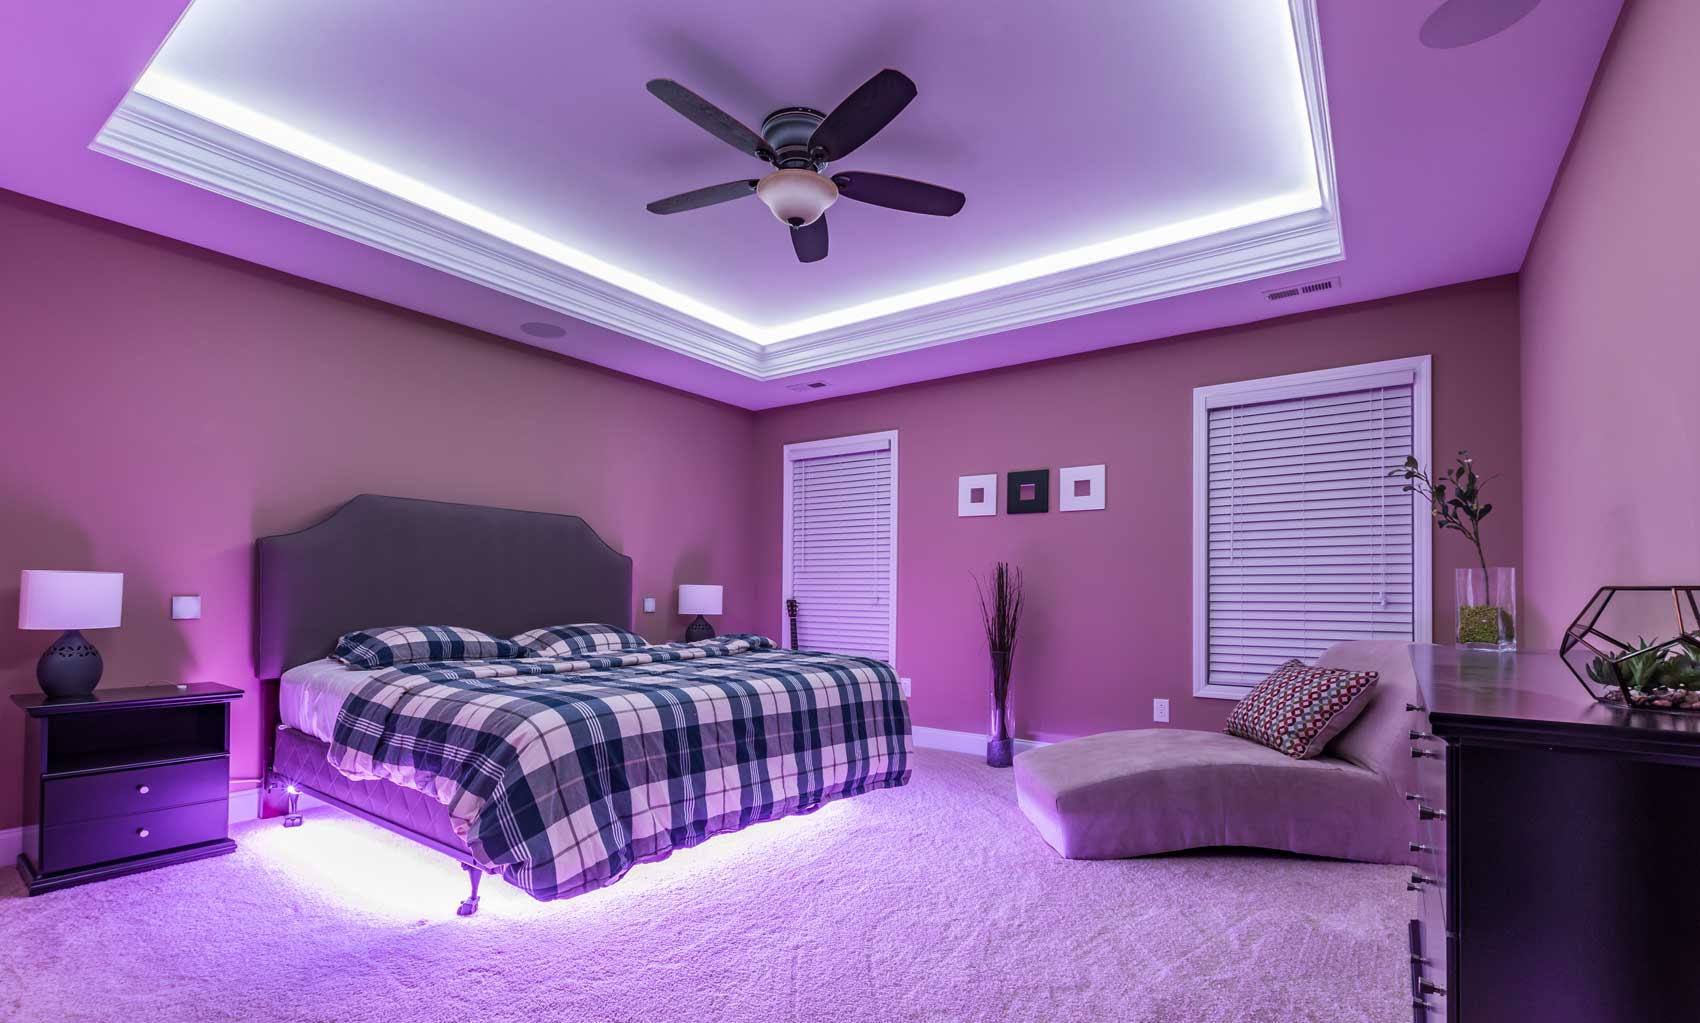 Ambient Lighting: Utilize LED Lights To Set The Mood Of